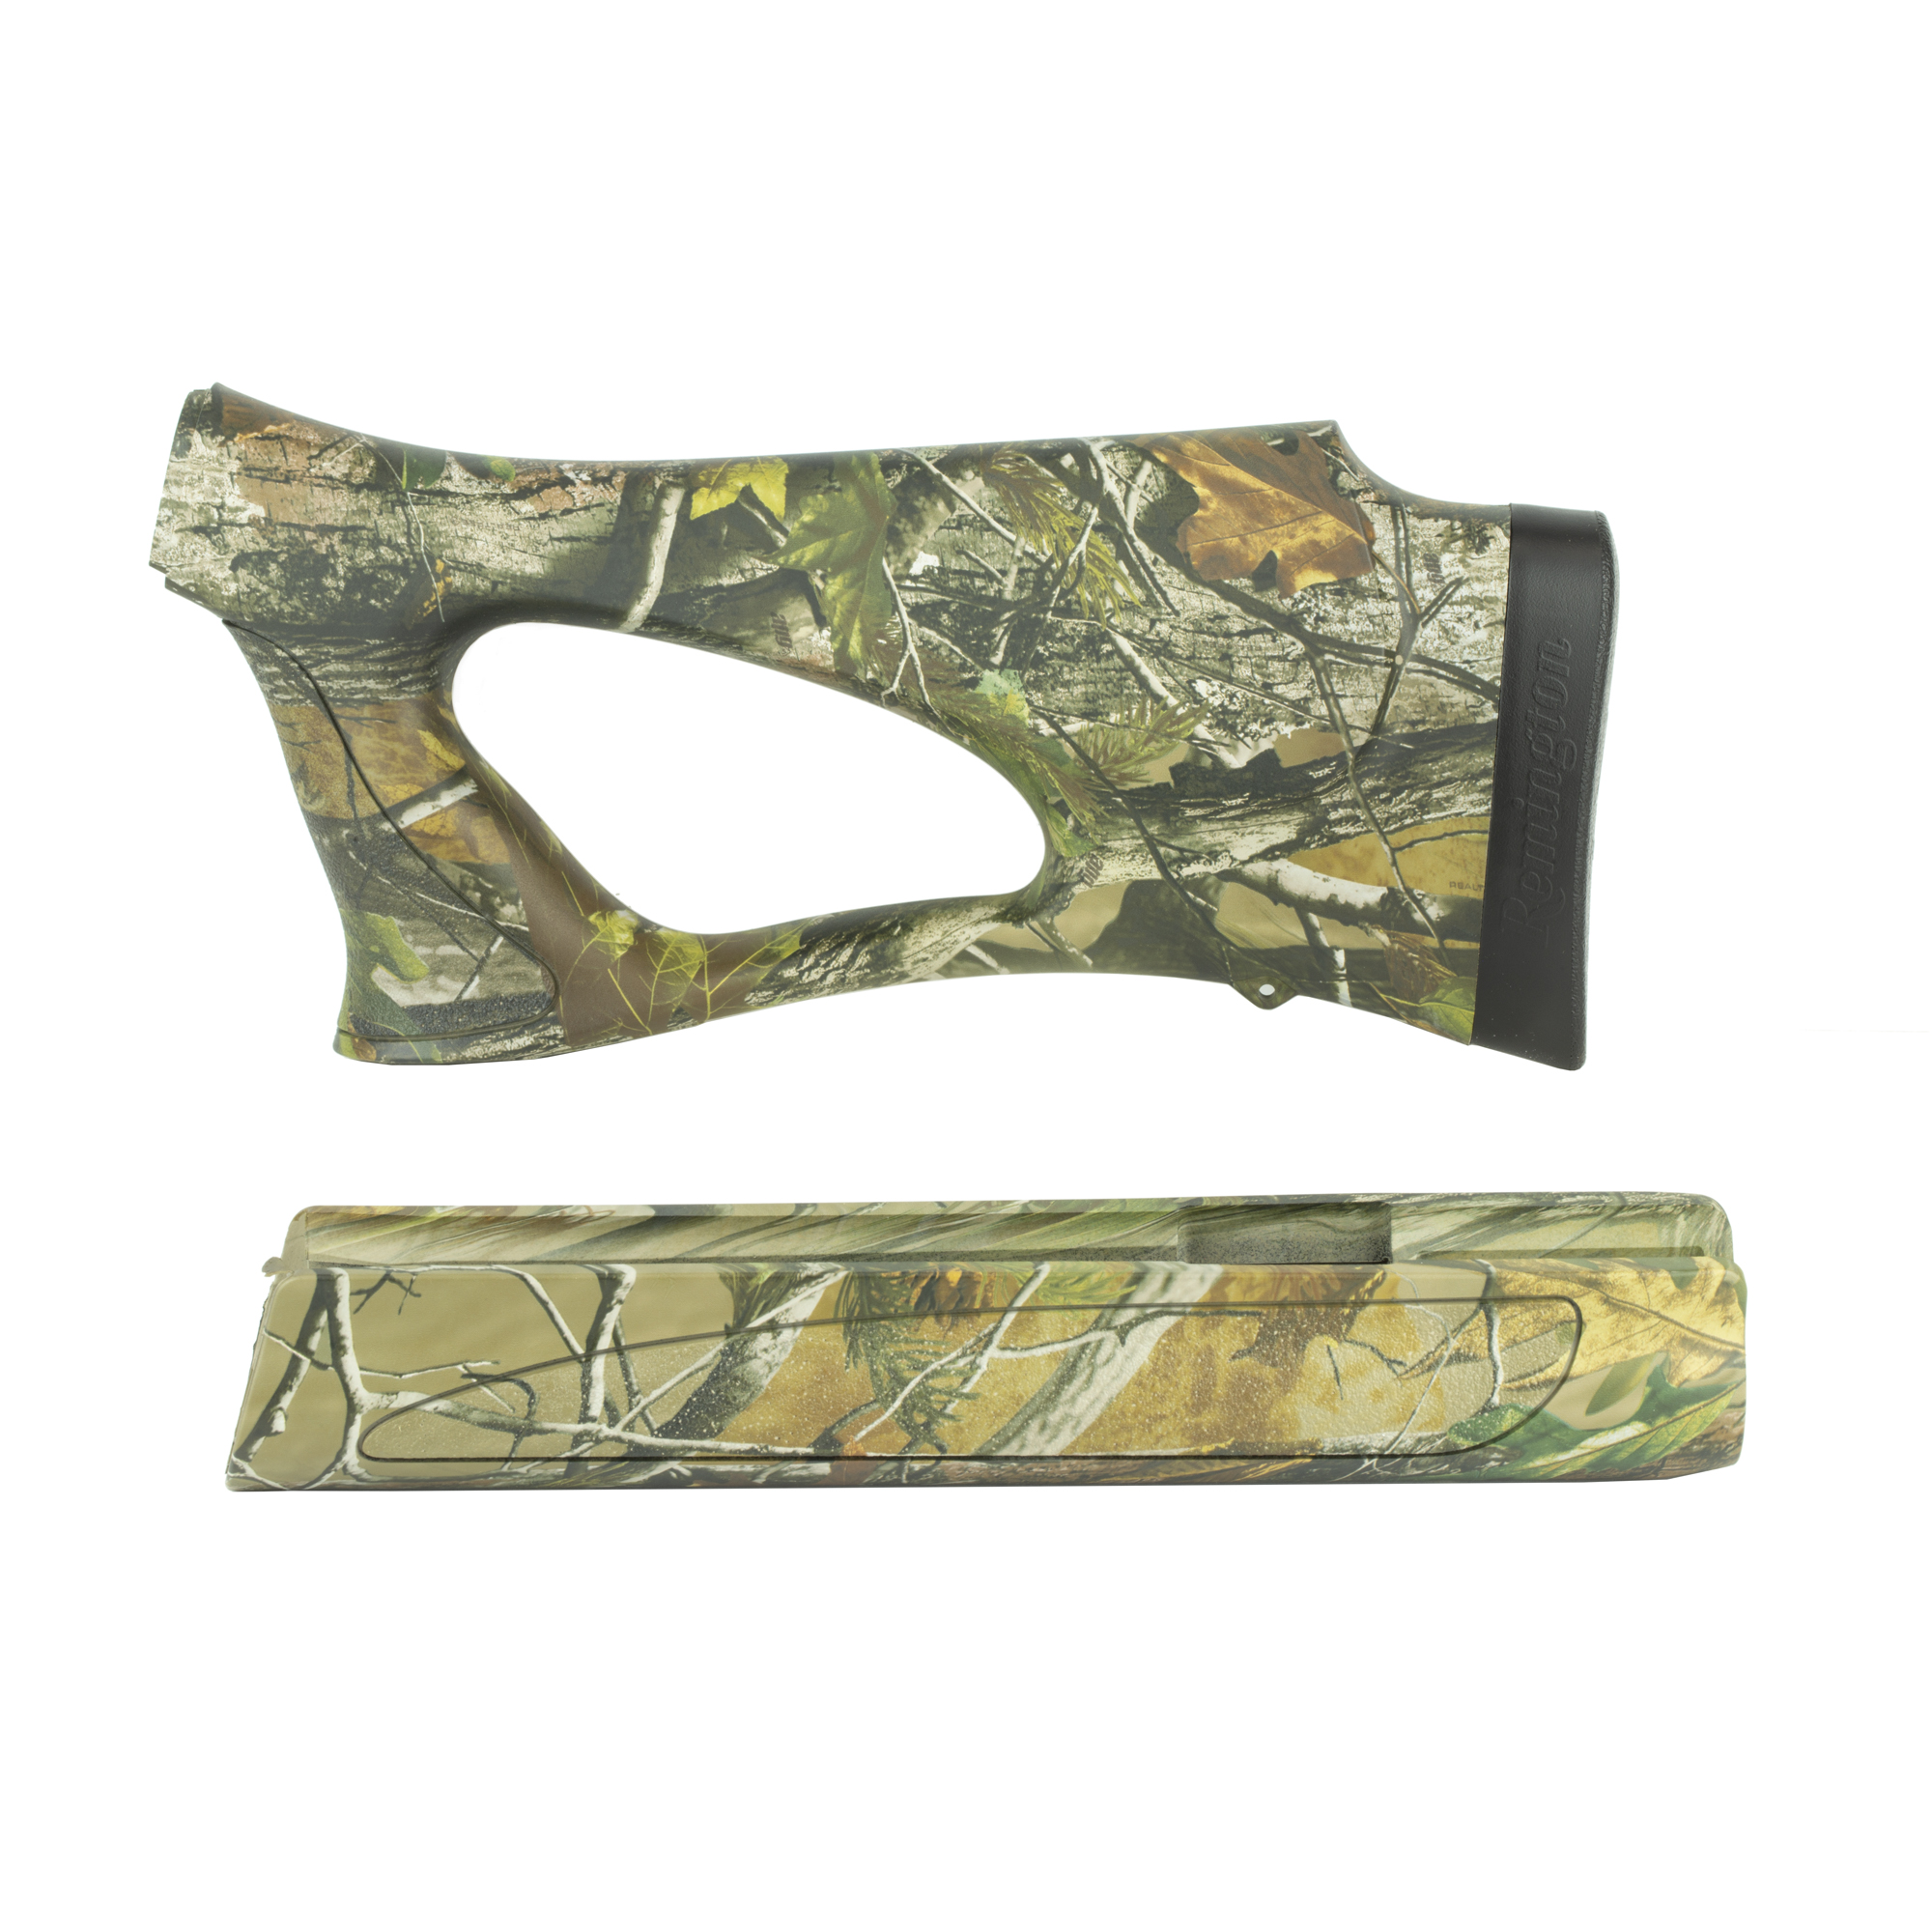 """The Remington 1187 Shurshot Thumbhole Stock combines the best of thumbhole and pistol-grip designs. The ShurShot stock affords right- and left-handed shooters equally astounding levels of shooting comfort and rock-steady aim. It was developed to meet the demands of deer"""" turkey and predator hunts. The natural"""" ergonomic pistol grip optimizes point ability and works in conjunction with the revolutionary new Supercell recoil pad to cancel felt recoil for more accurate first shots and faster follow-ups. It's an ultra-lightweight design and the comb is specially contoured for rapid eye alignment with your sights or scope. Fits Remington 1187-12 Gauge only."""